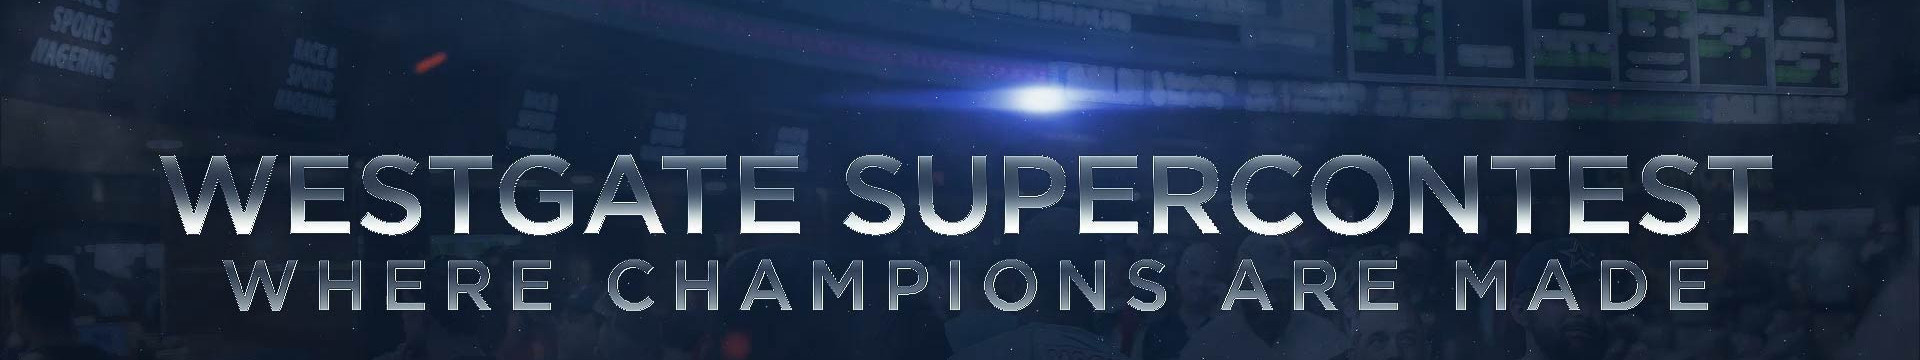 Supercontest Weekly Card at our Las Vegas Hotel and Casino | SuperContest Logo